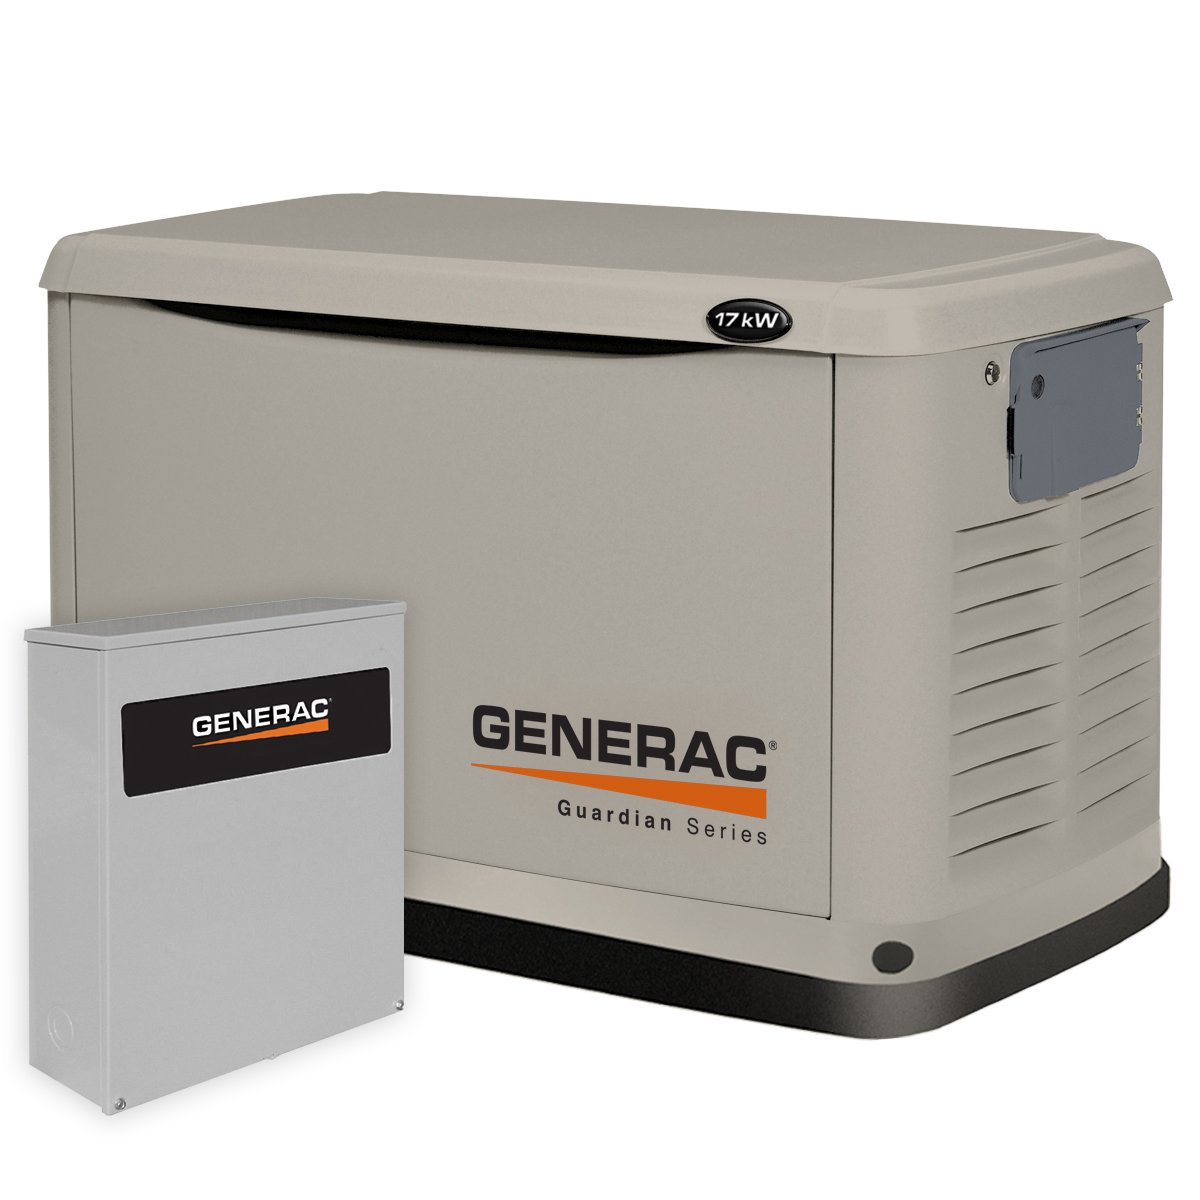 Generac 6243 17,000 Watt Air-Cooled Aluminum Enclosure Liquid Propane/Natural Gas Powered Standby Generator with Transfer Switch, 200SE (not CUL) (Discontinued by Manufacturer)